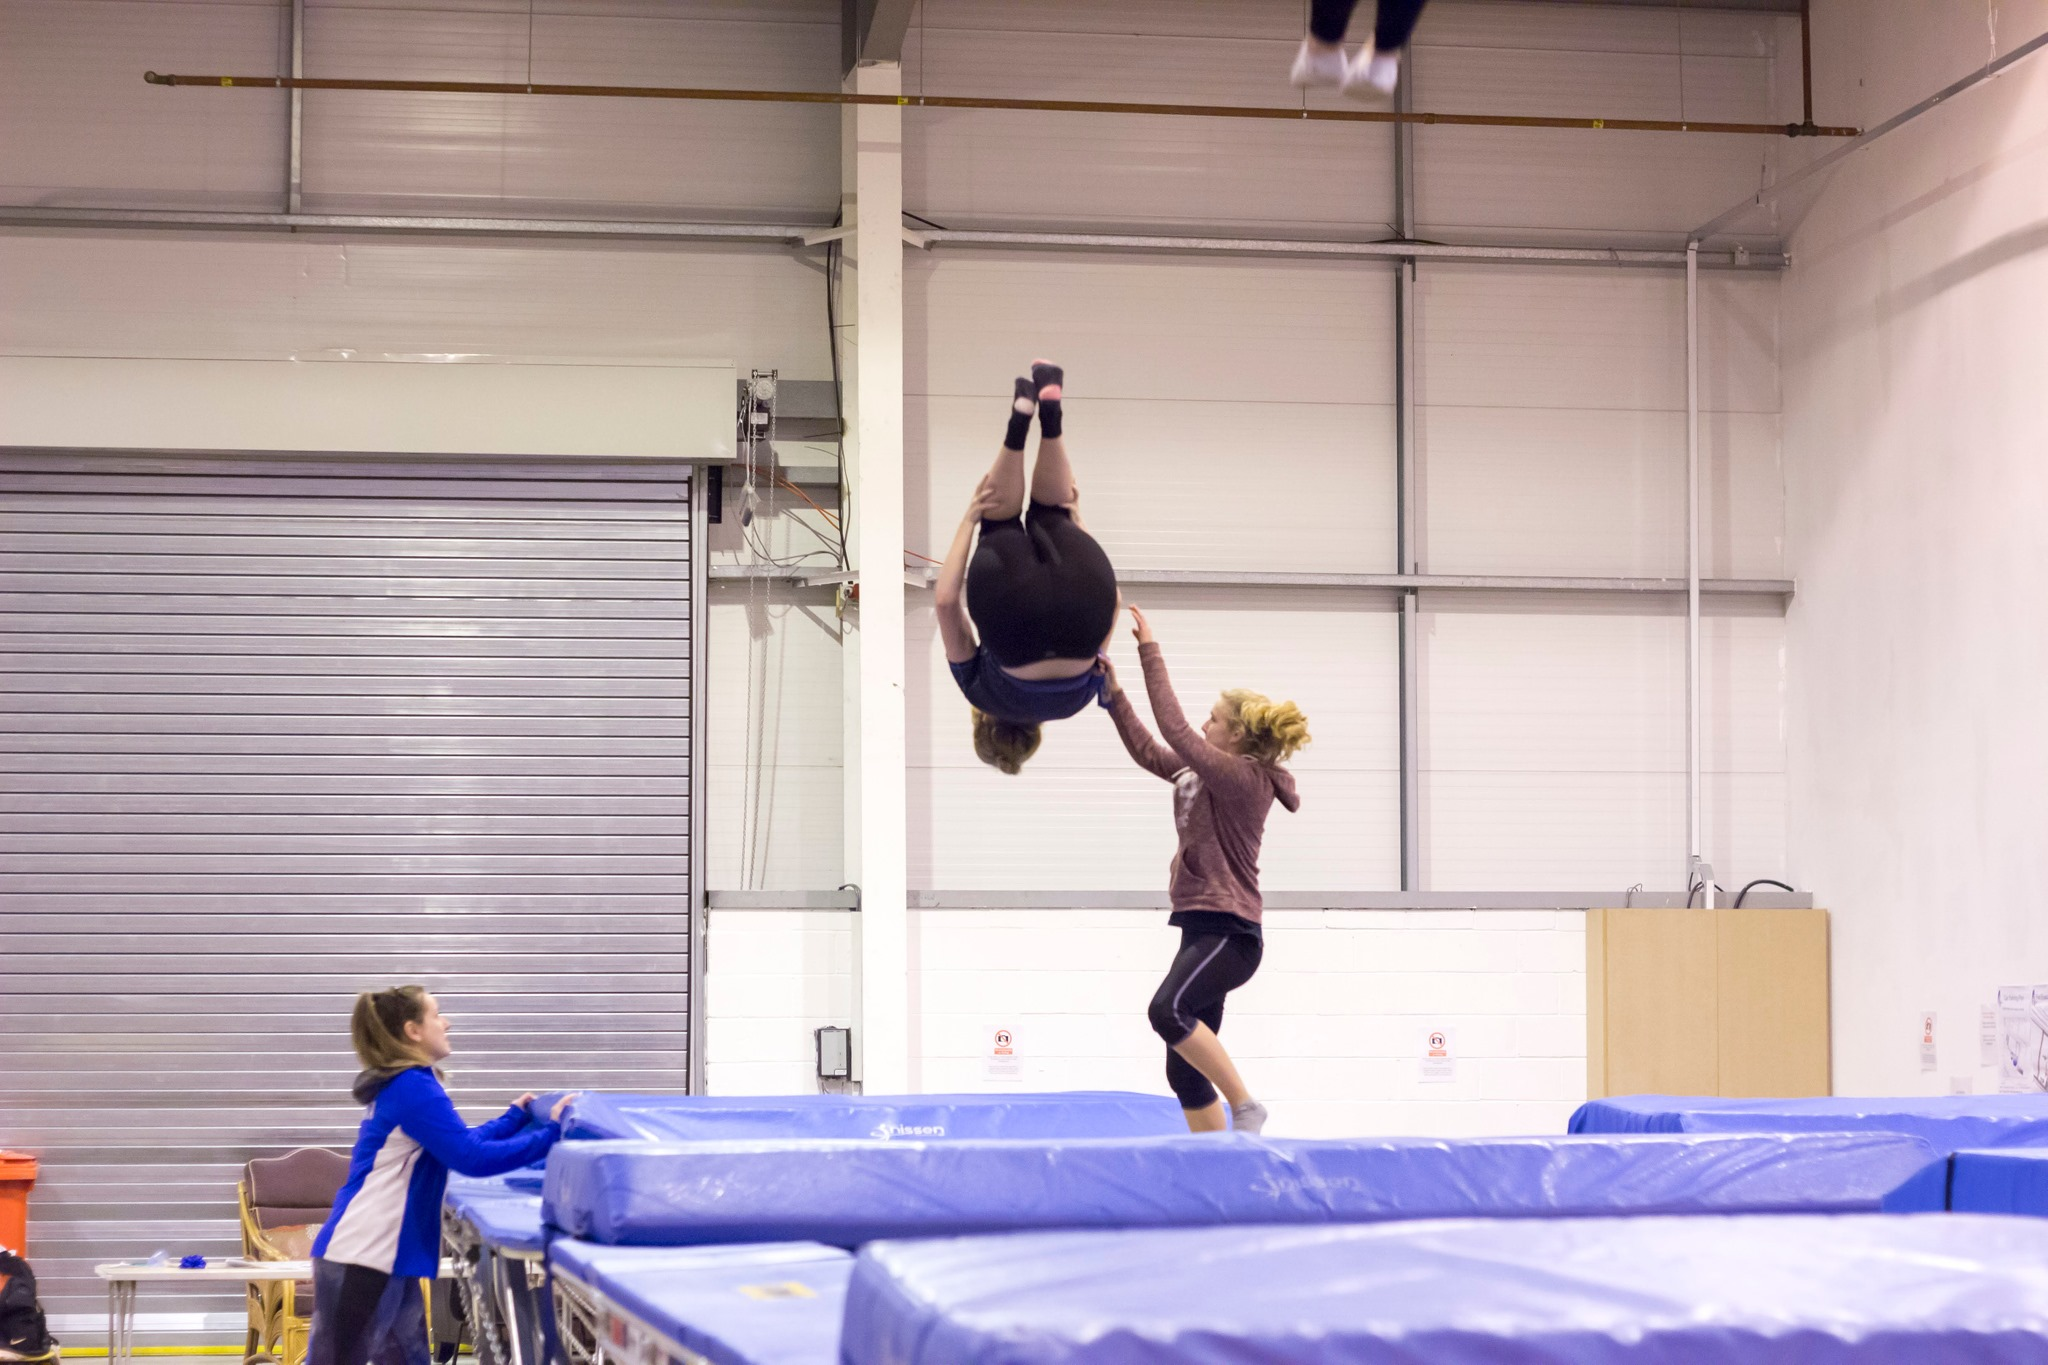 Fitness – Trampolining is a fantastic form of exercise which naturally releases endorphins improving feelings of health and well-being.